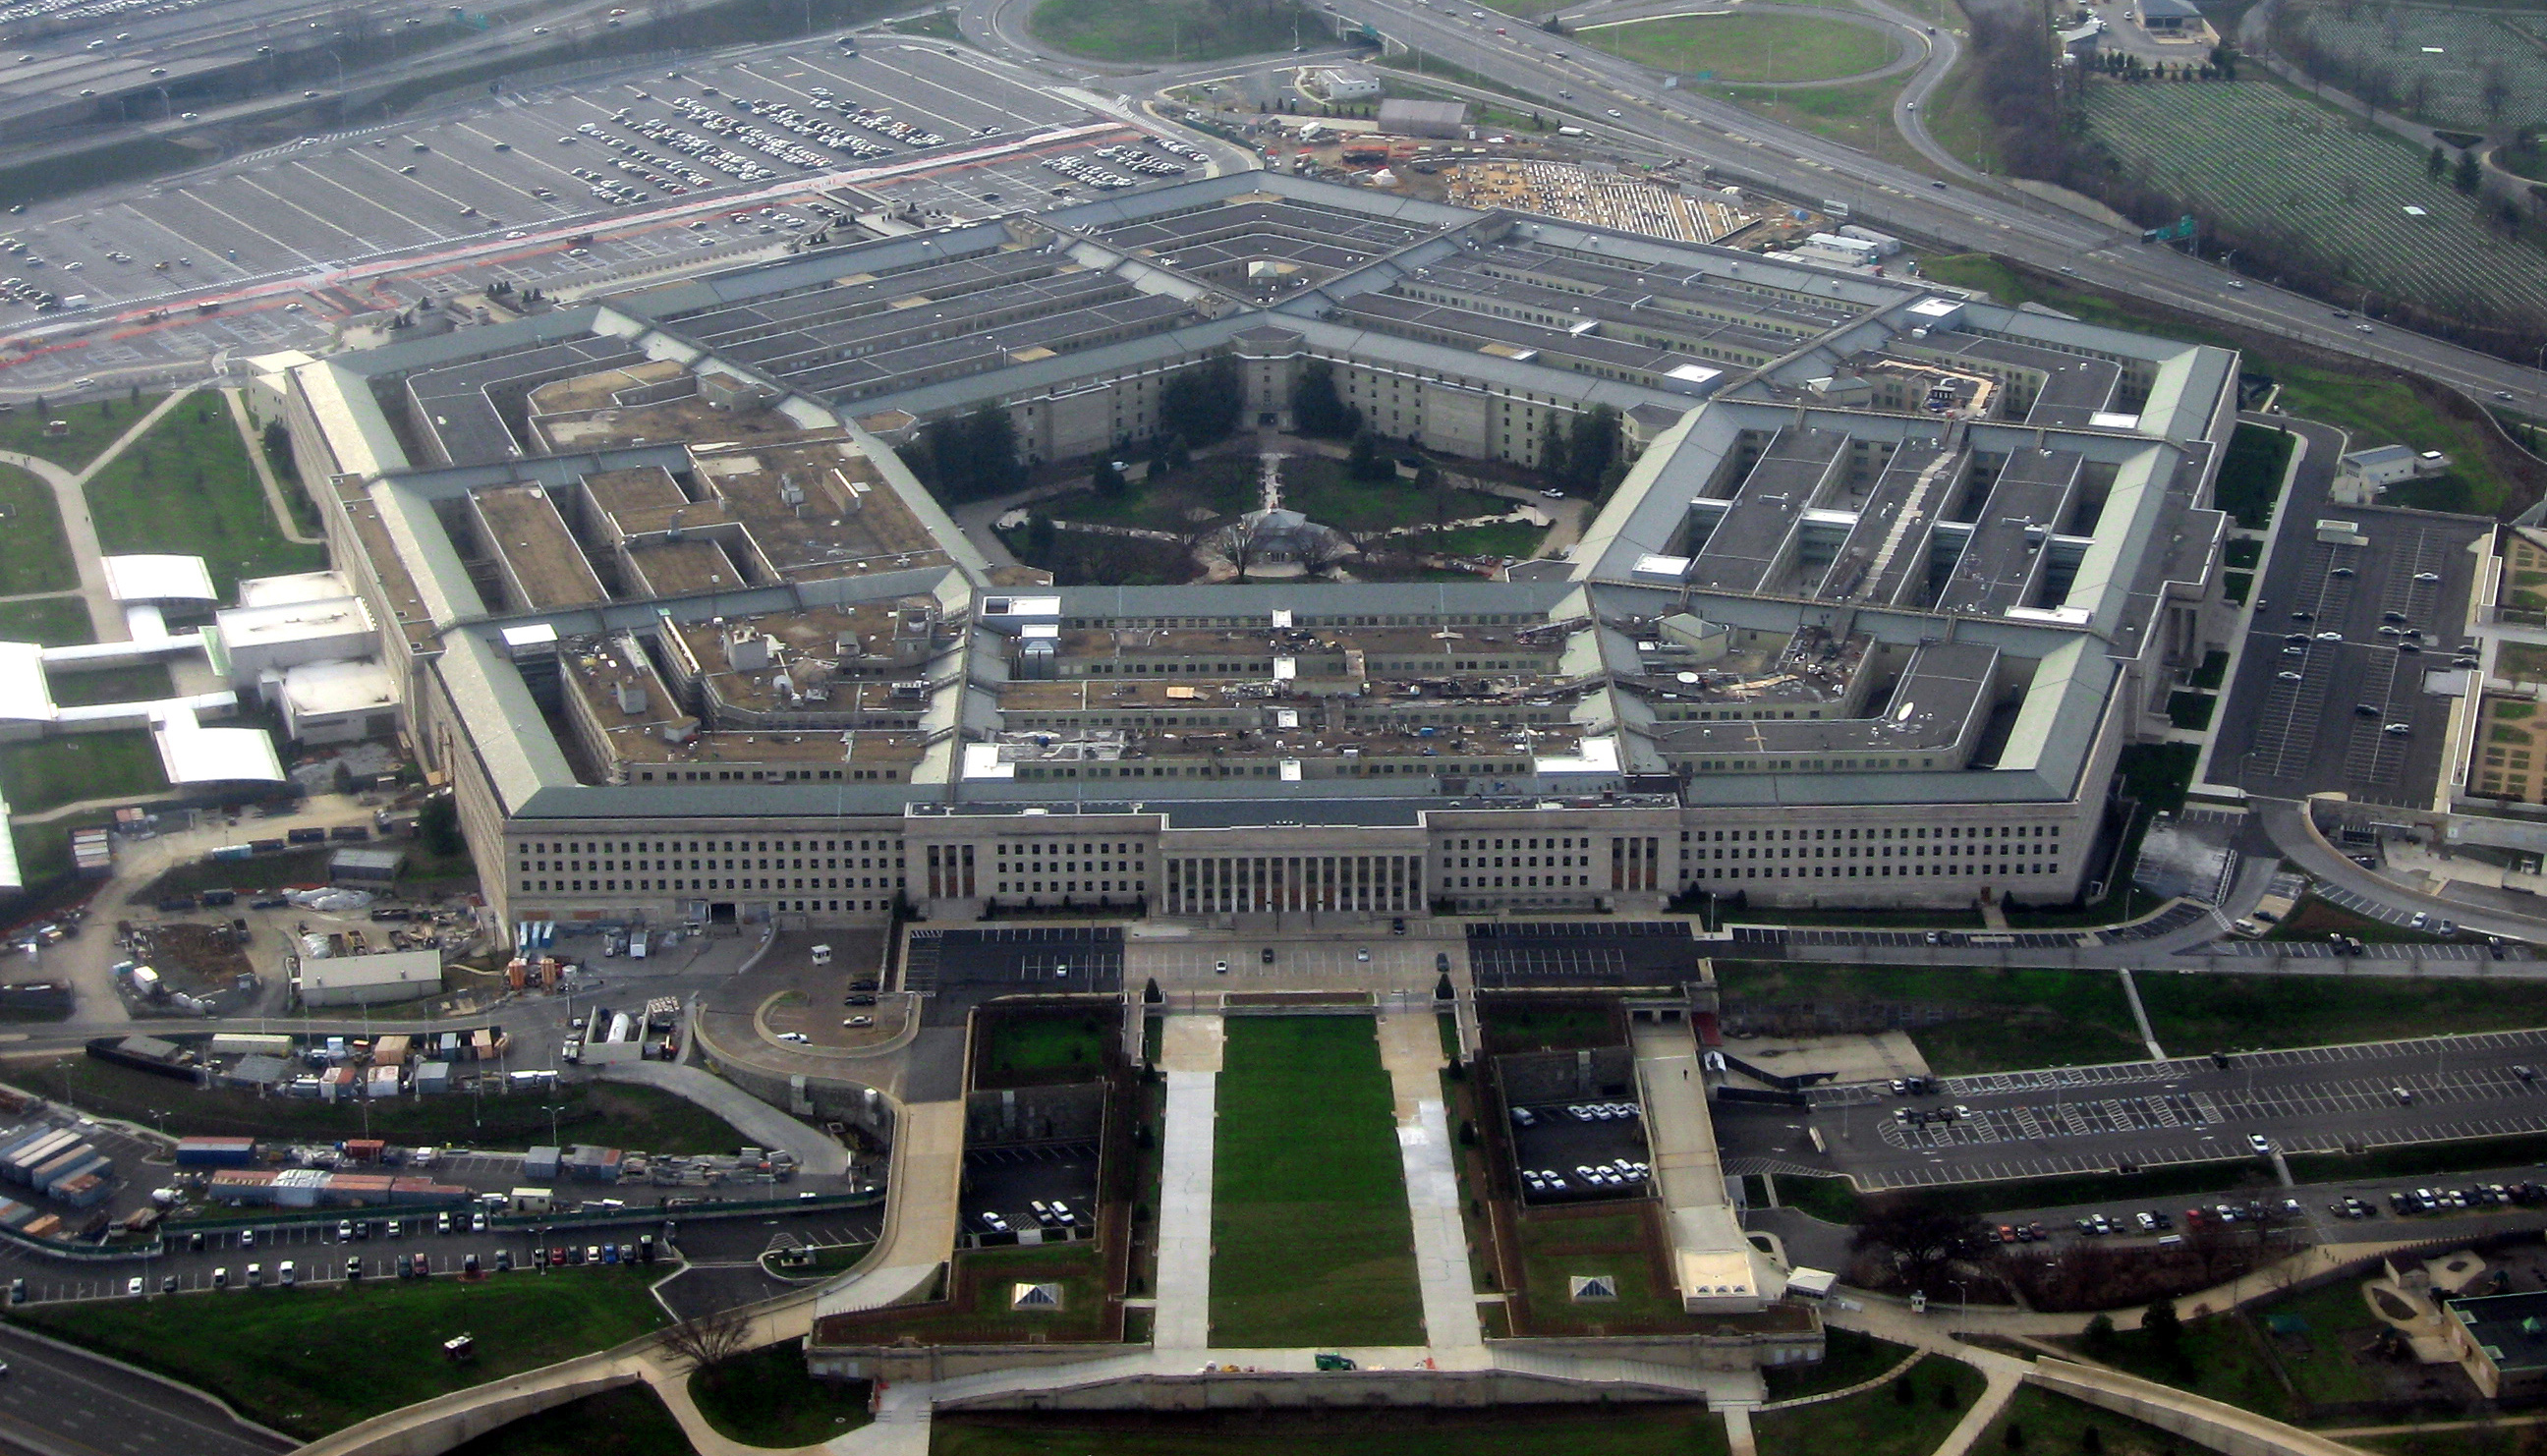 https://assets.sourcemedia.com/aa/fd/3adf584d4796849c0b625007fb50/the-pentagon-january-2008.jpg